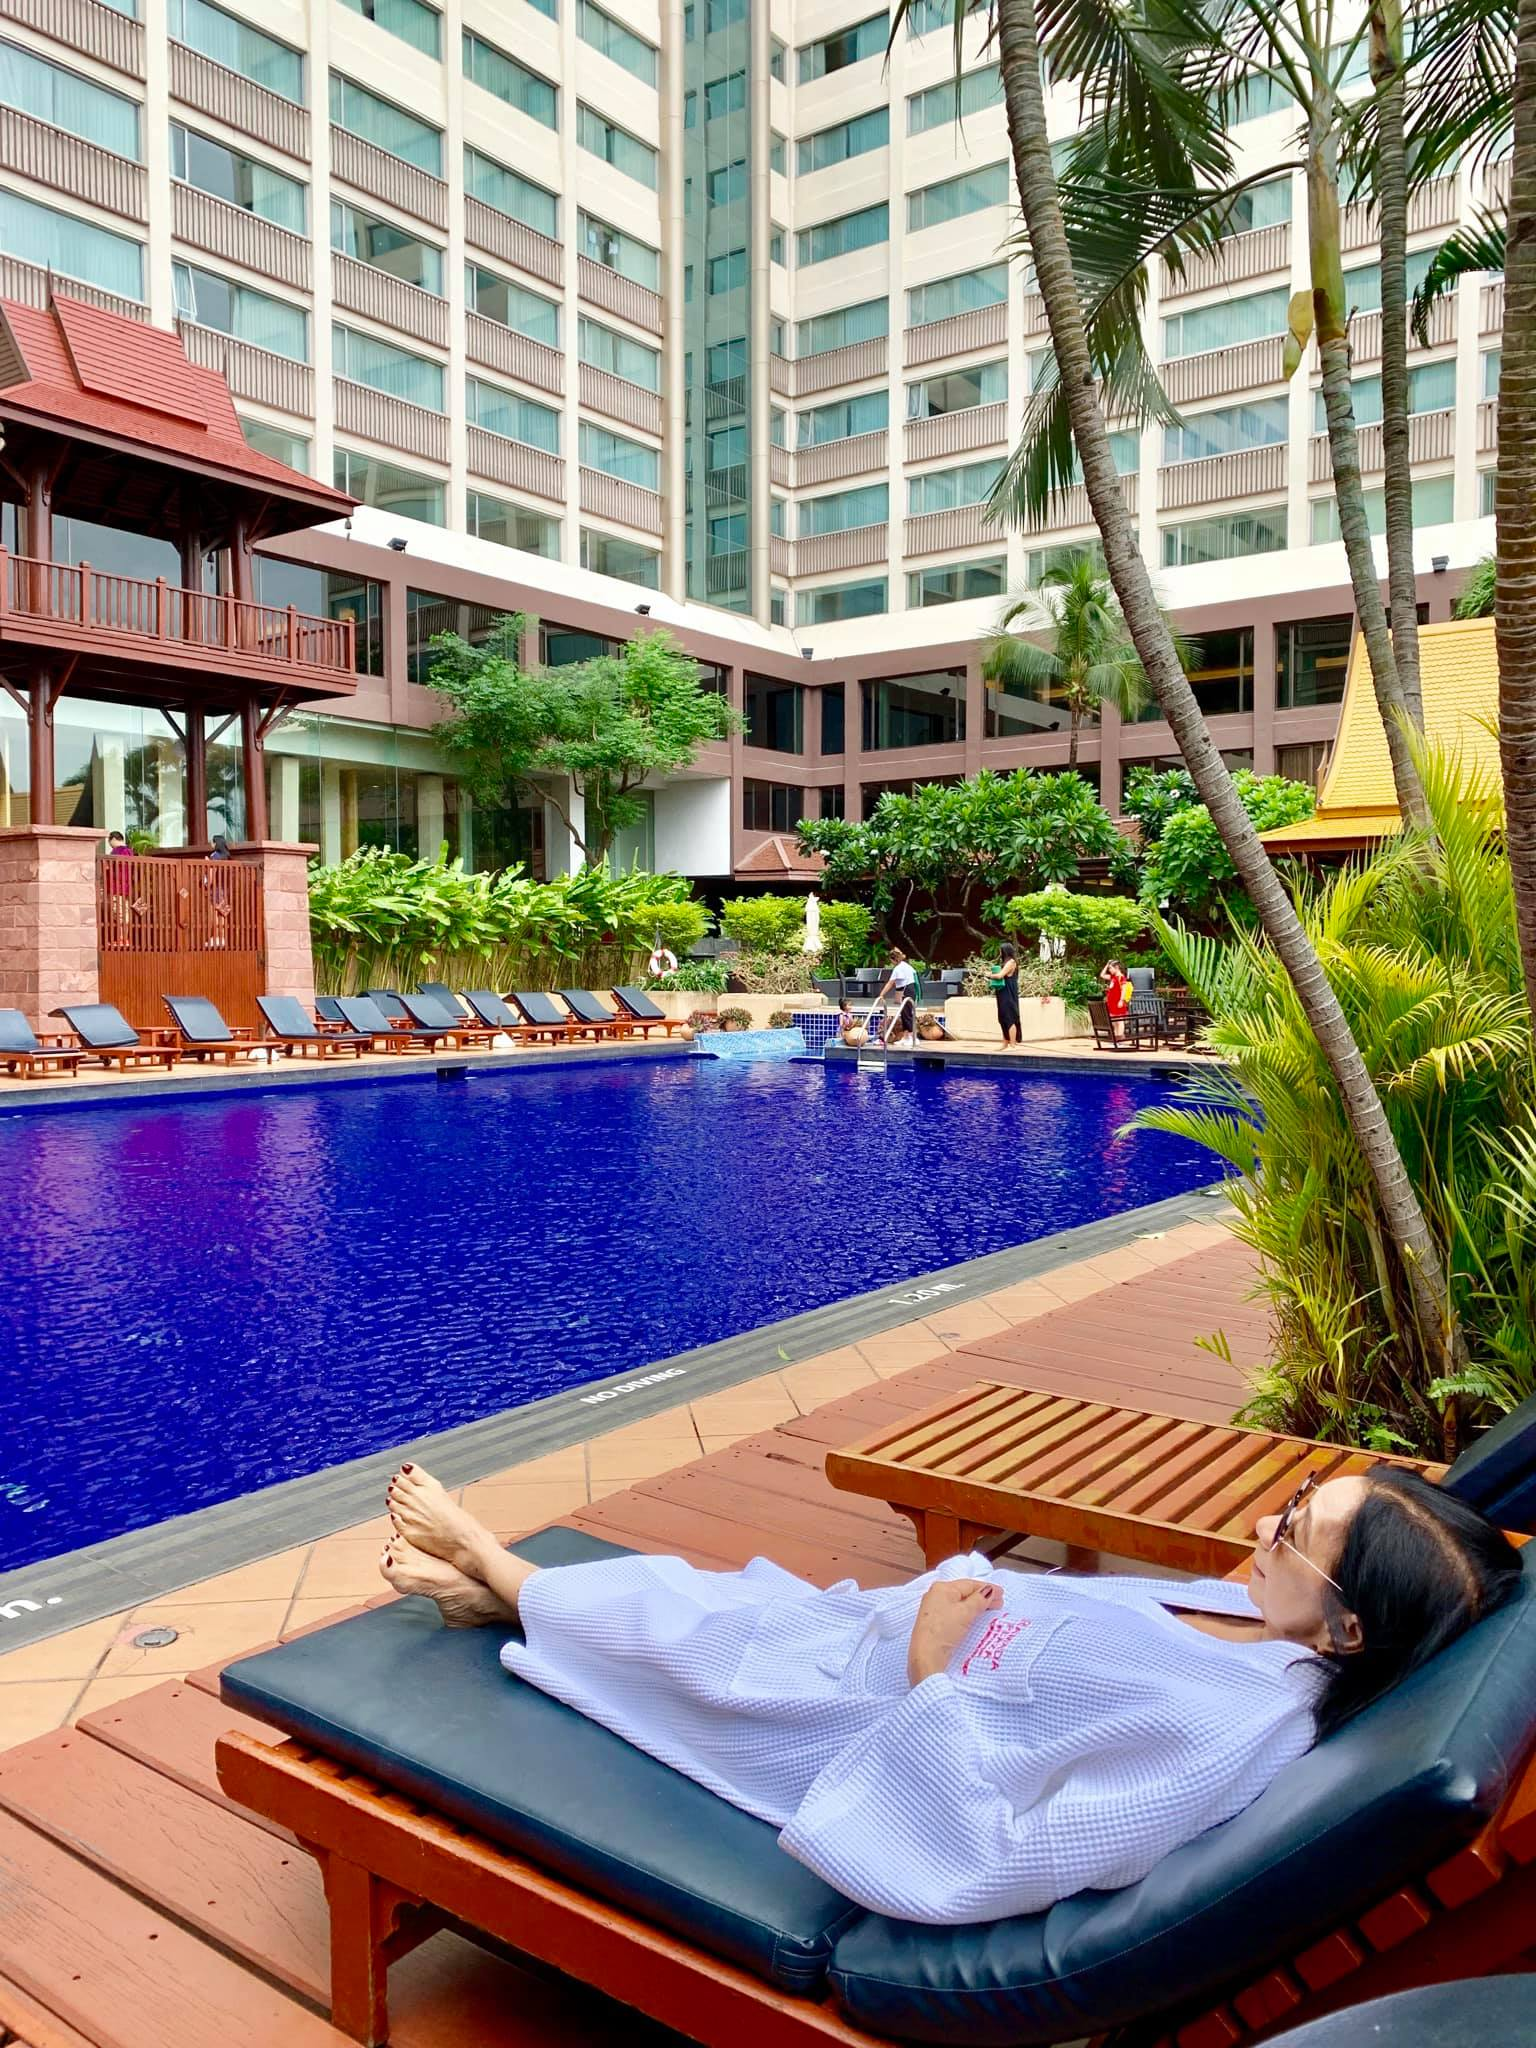 Our Luxurious Staycation At Ramada Plaza In Bangkok And Our Tour With Tinggly Experiences28